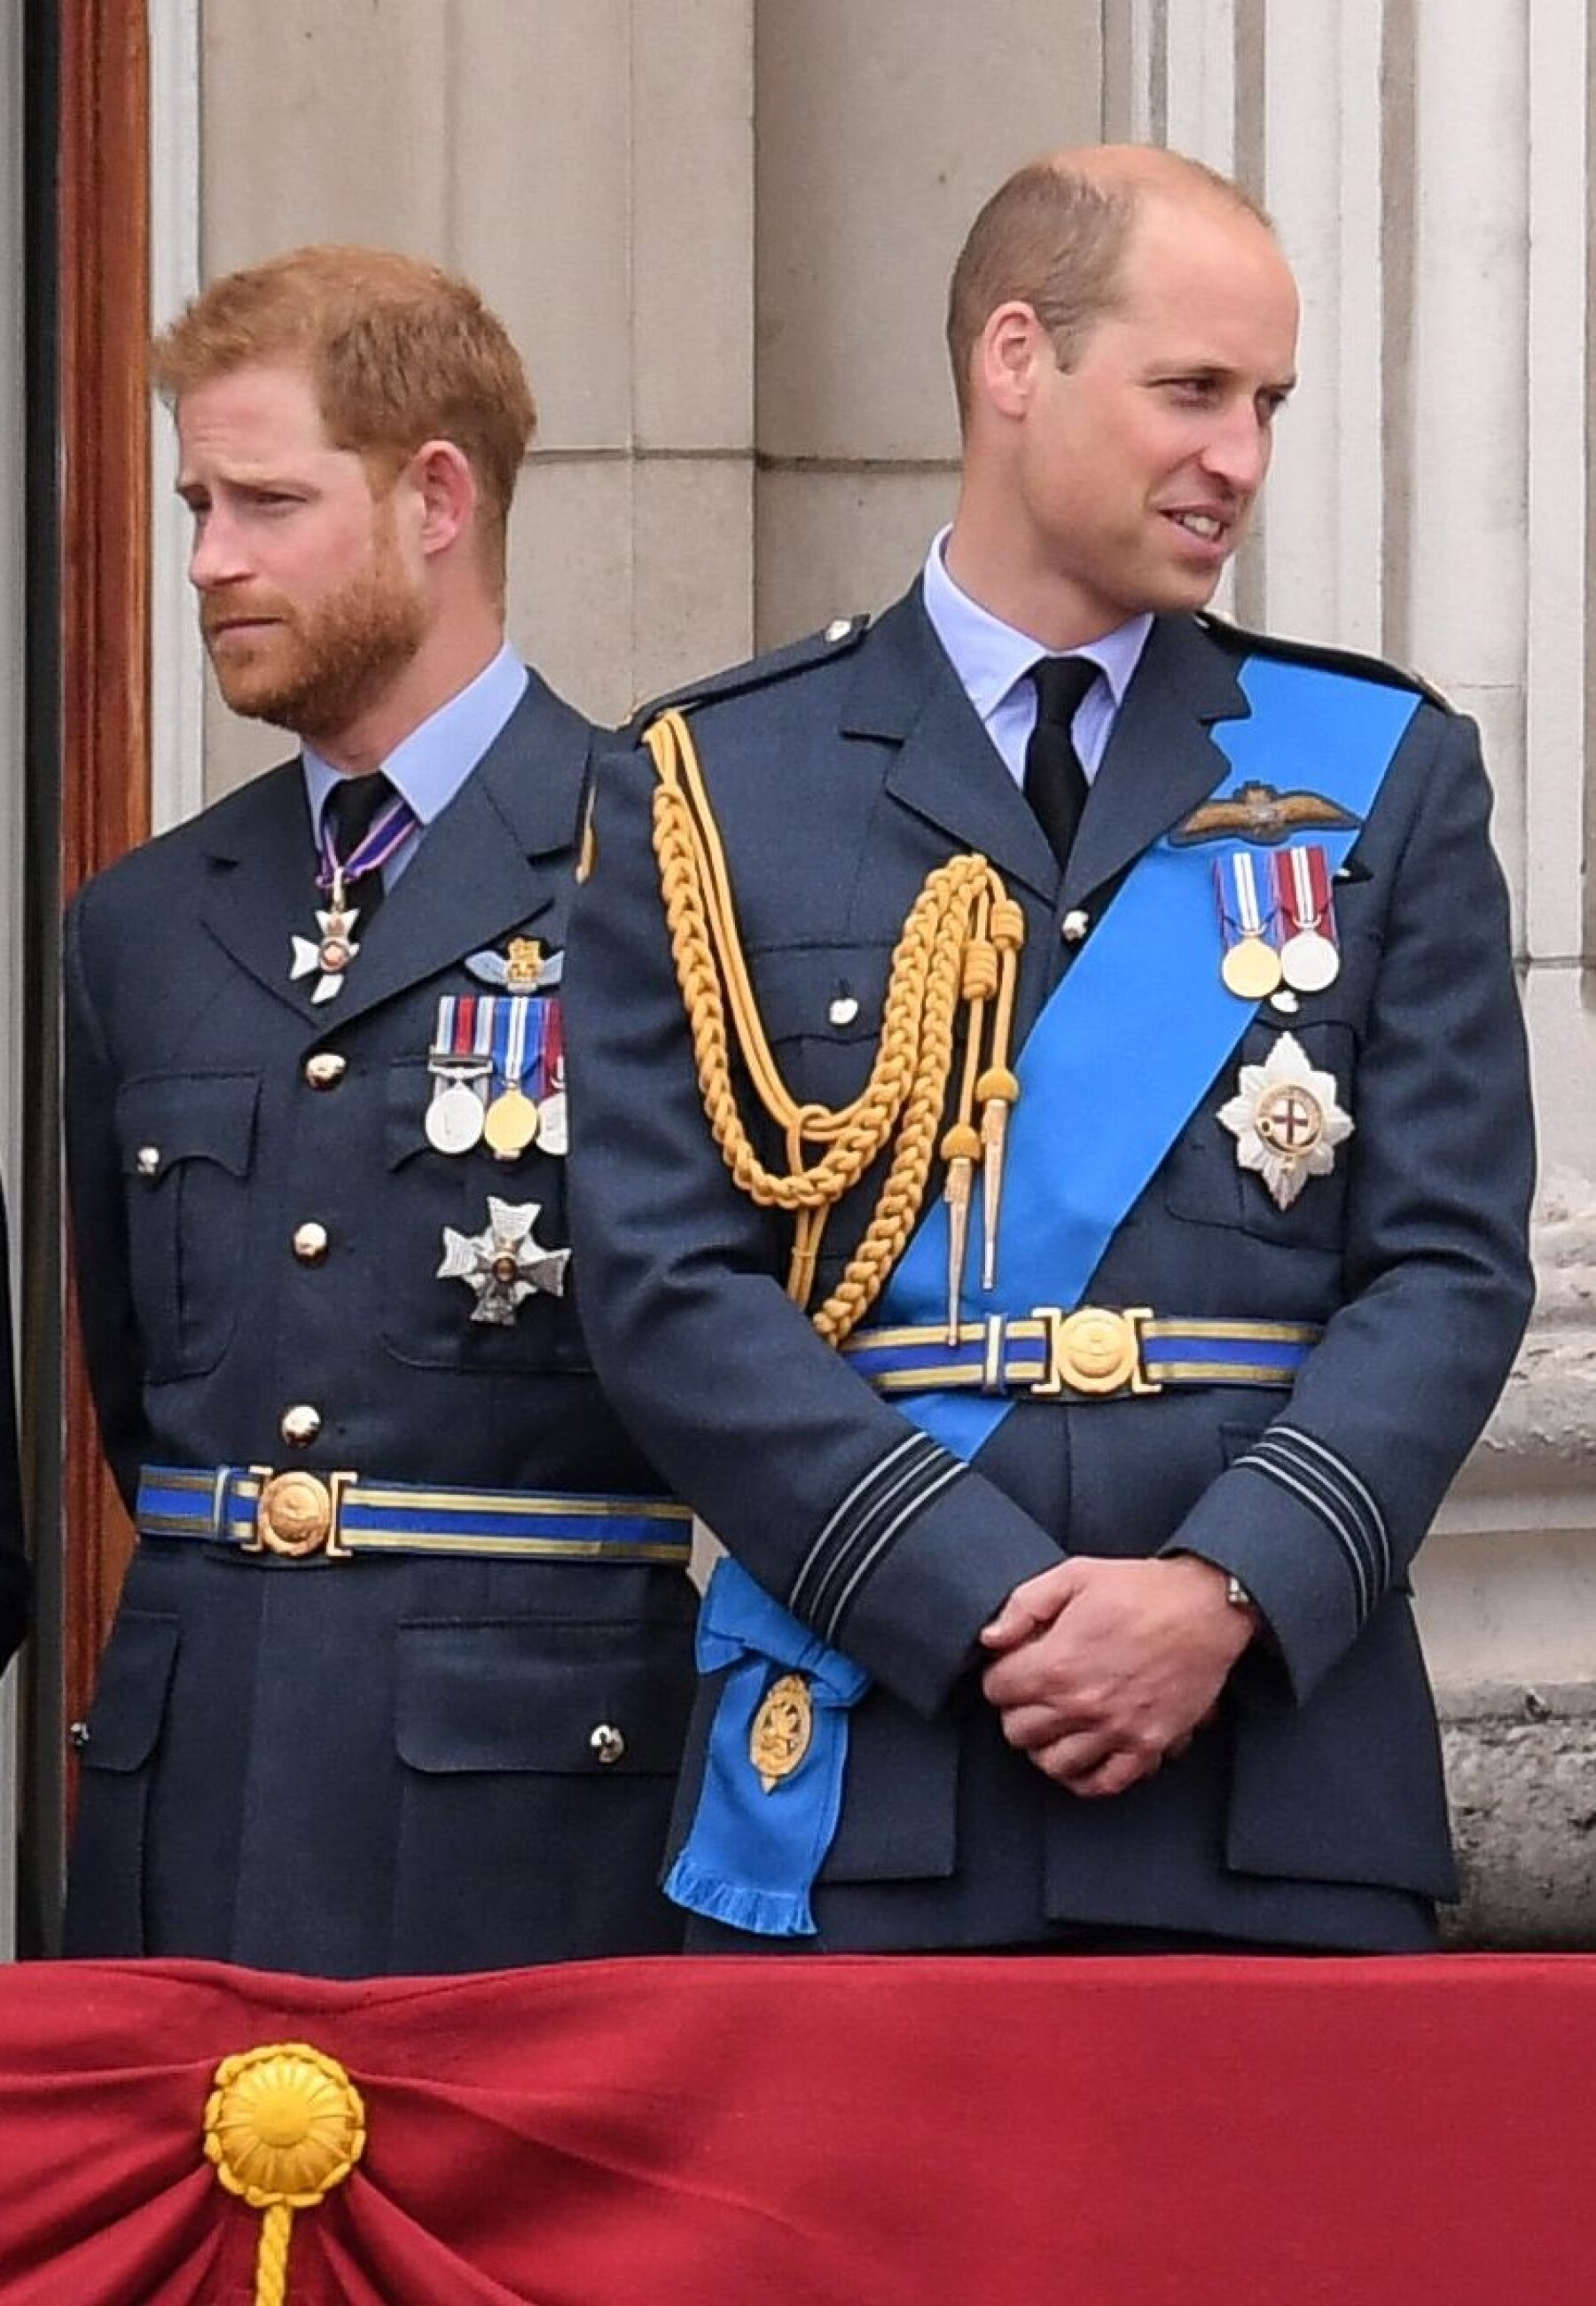 Príncipe Harry y príncipe William